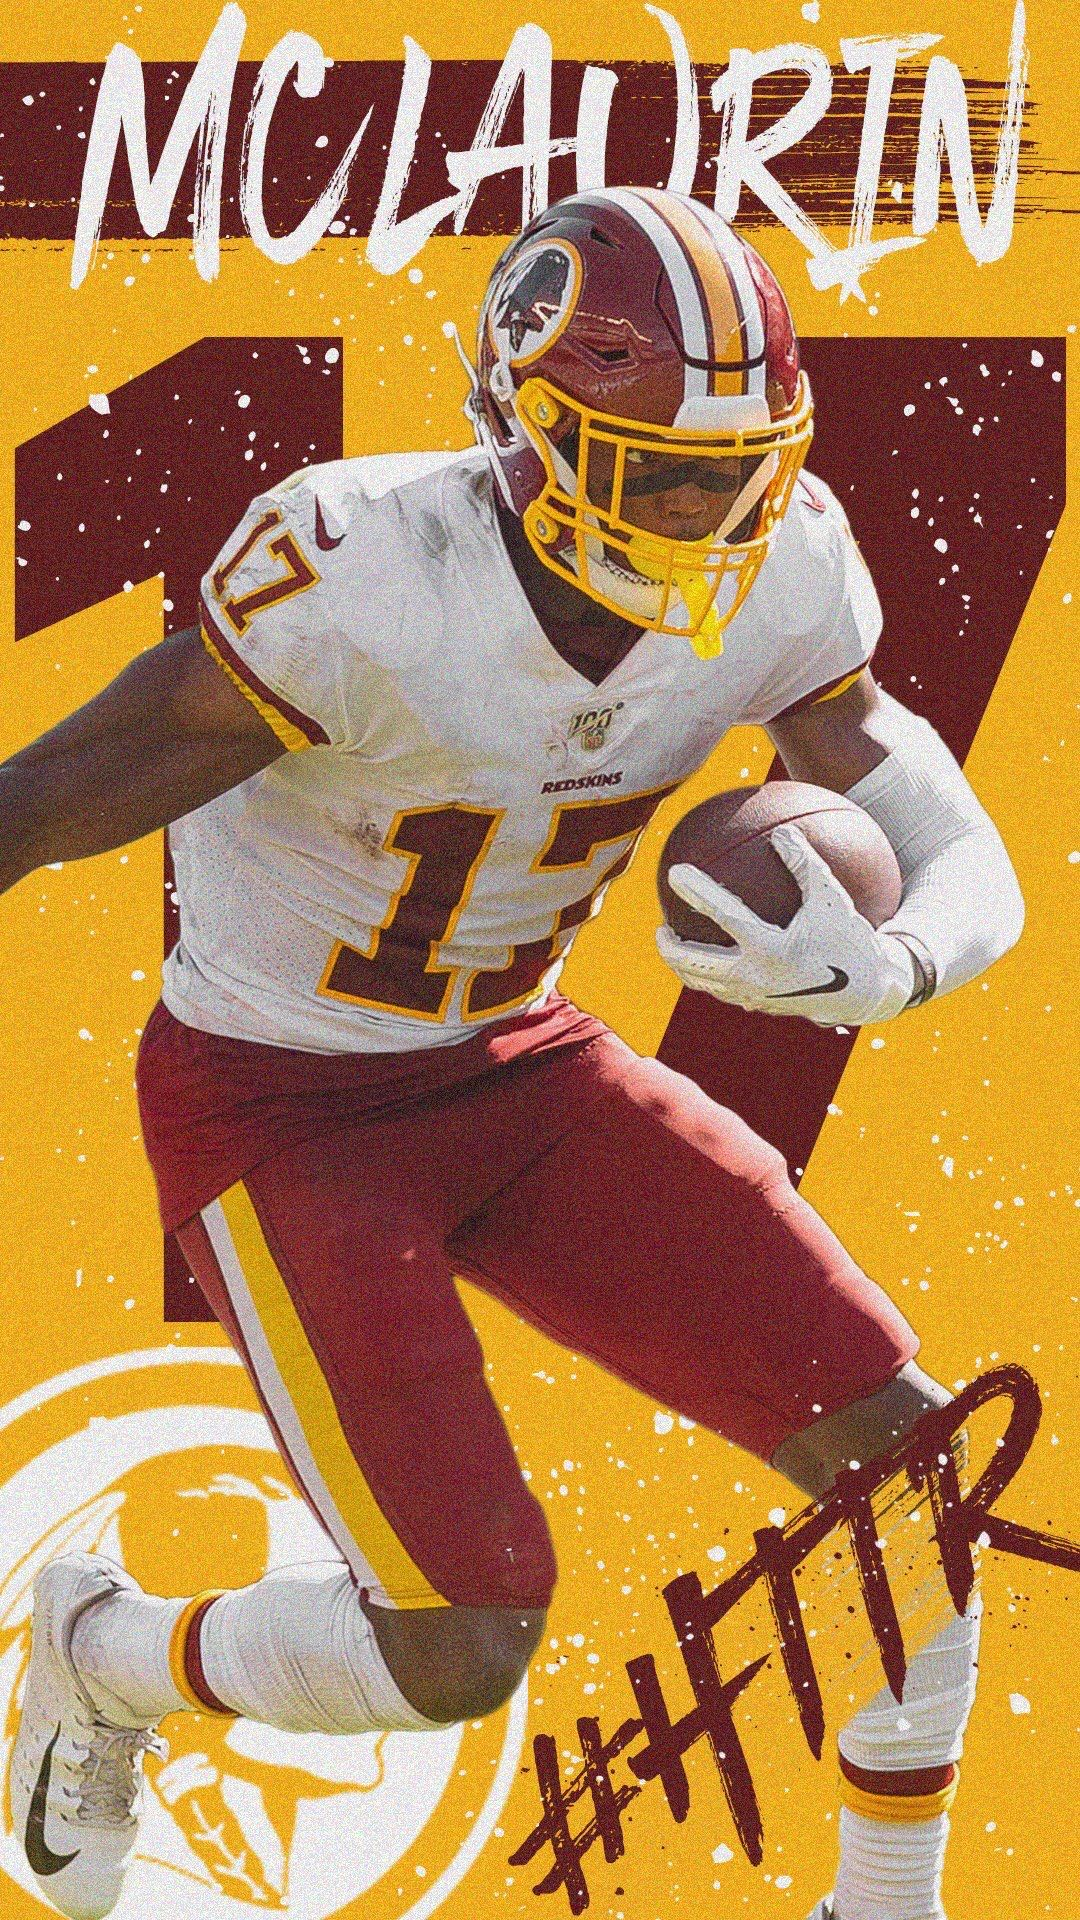 Washington Redskins Iphone Wallpaper posted by Christopher Walker 1080x1920